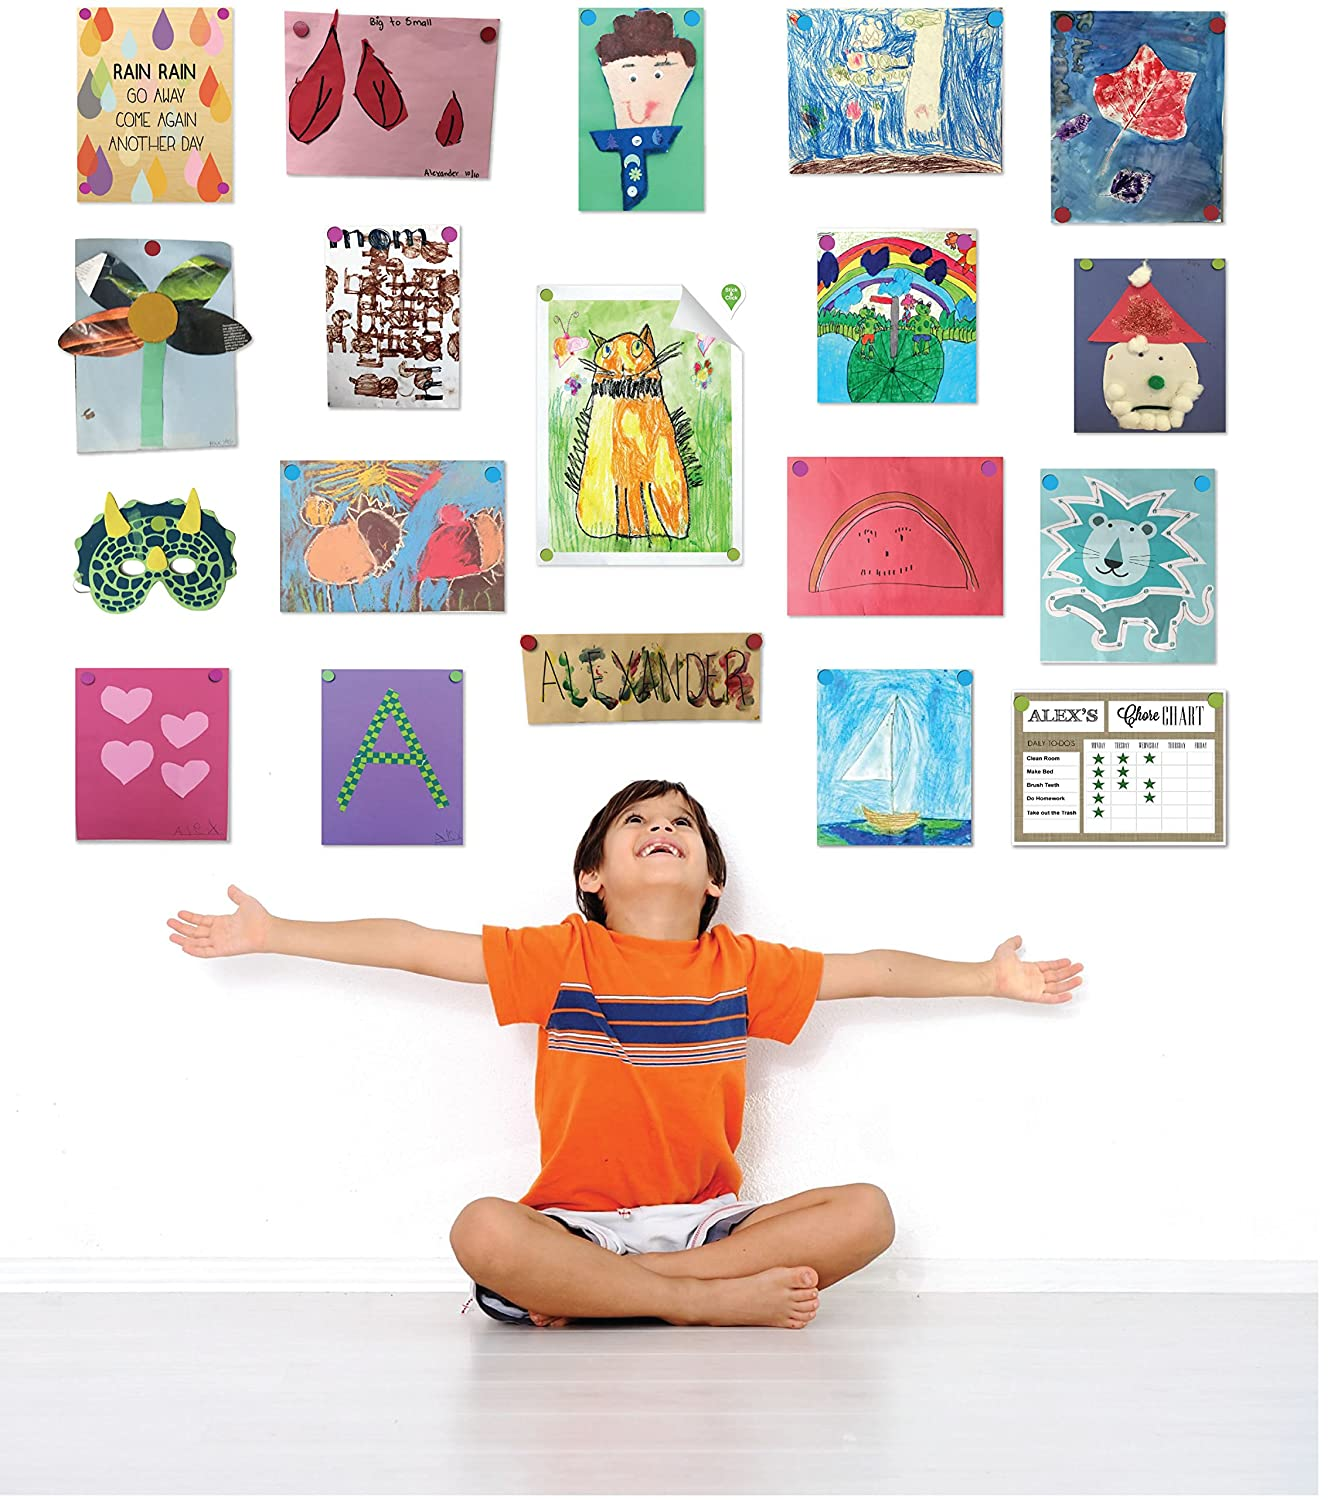 GoodHangups for Kids Art Damage Free Magnetic Hangers Reusable Works on Any Wall As Seen On Shark Tank 40 Pack GHK008